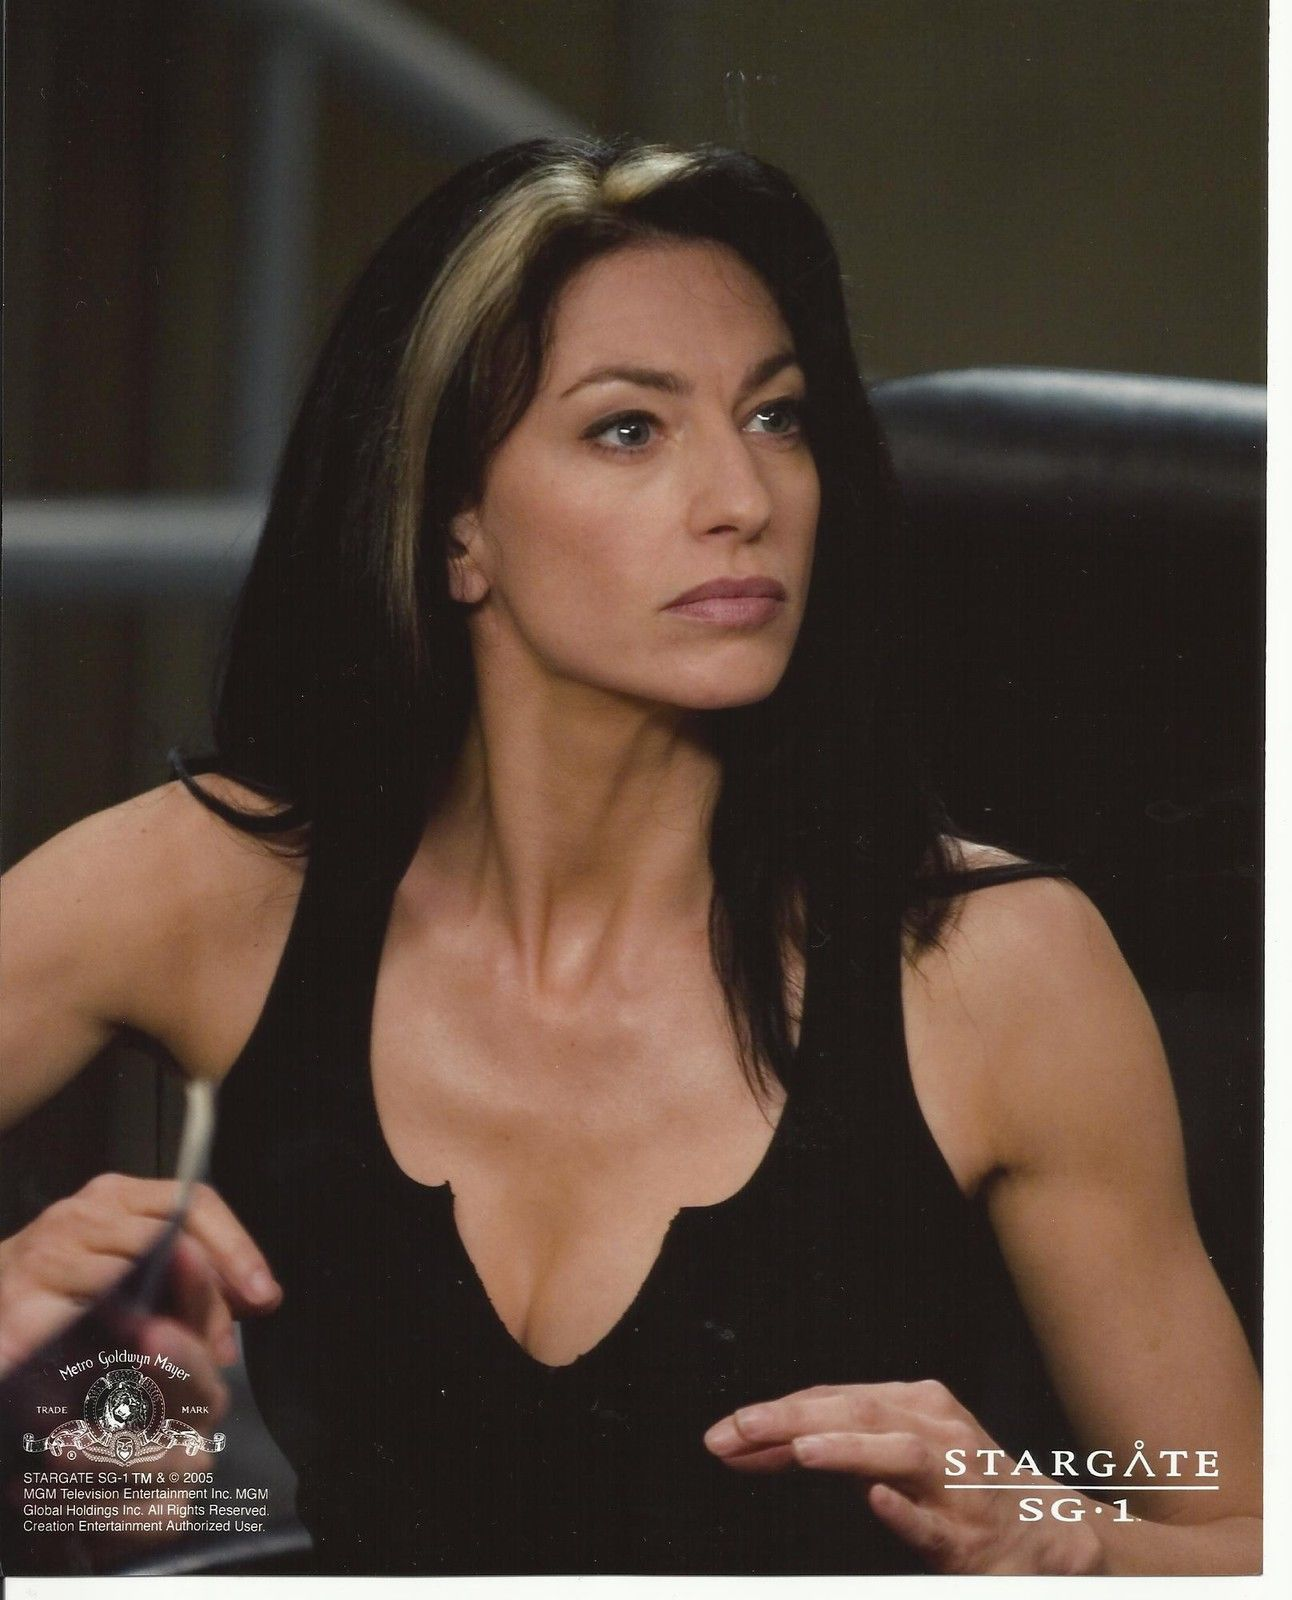 Stargate Sg 1 Claudia Black As Vala Mal Doran Wearing Black Tank 8